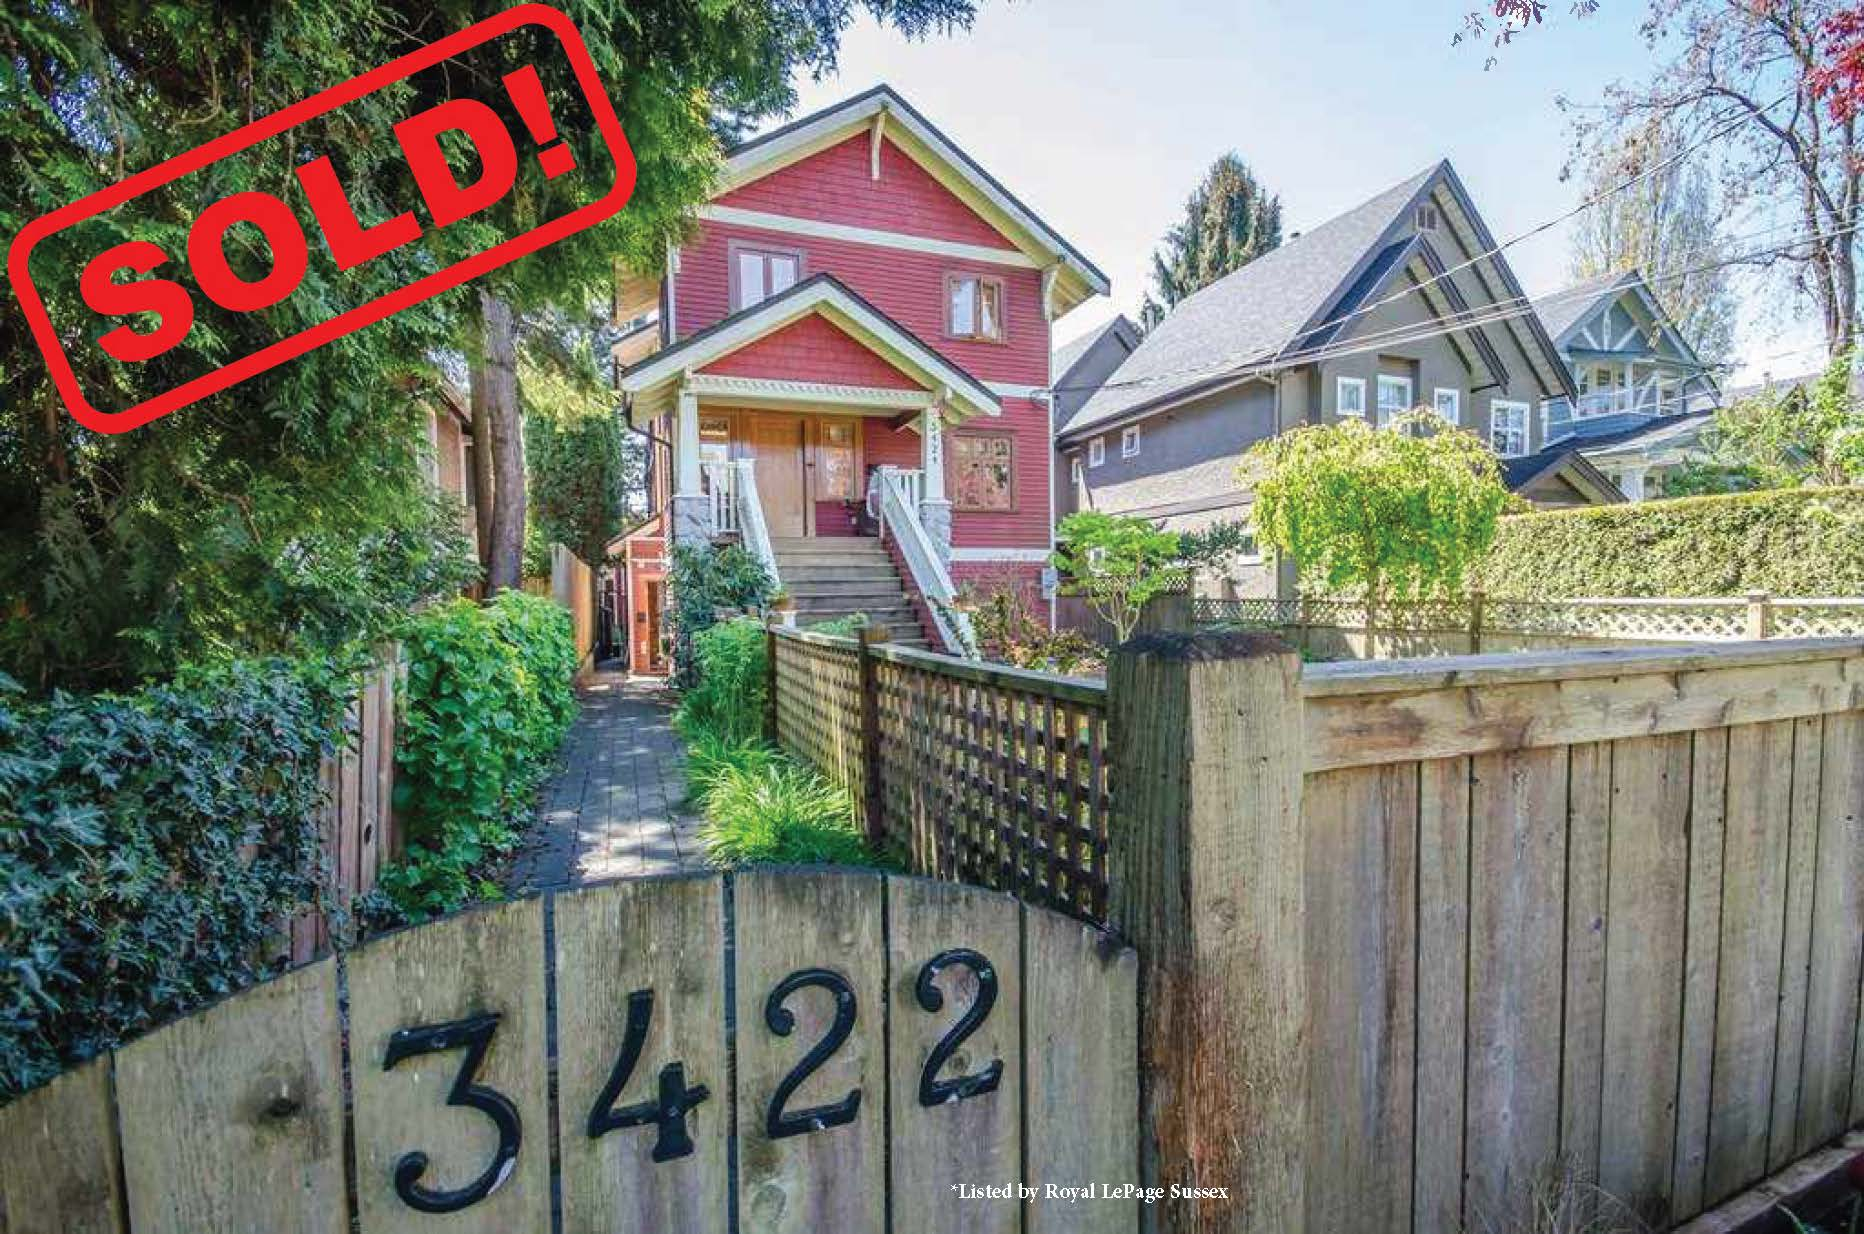 3422 West 7th Avenue   sold for: $1,650,000  3 Bed | 2 Bath | 1,263 SF